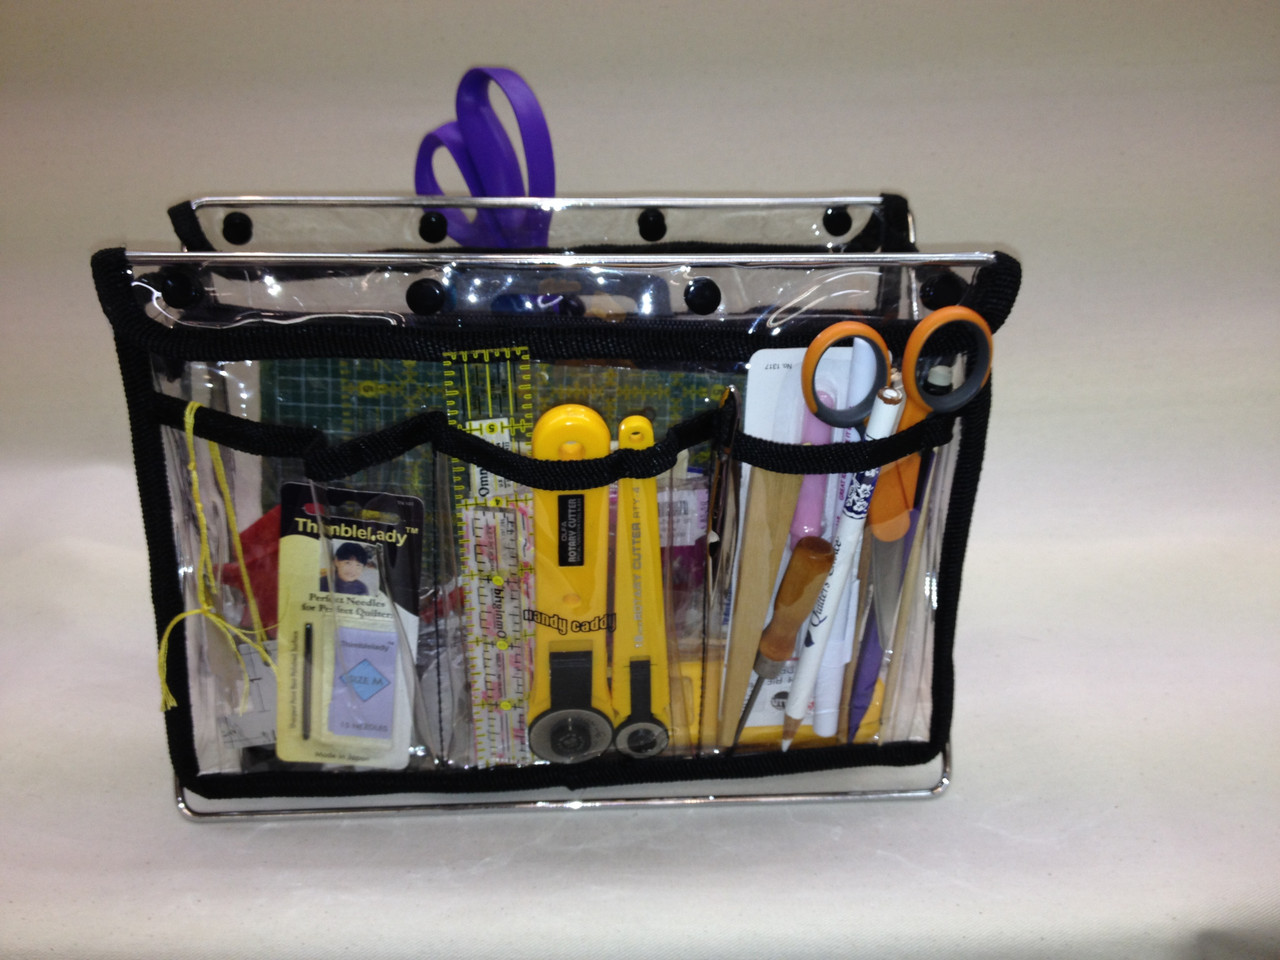 Shop Handy Caddy and other favorite things